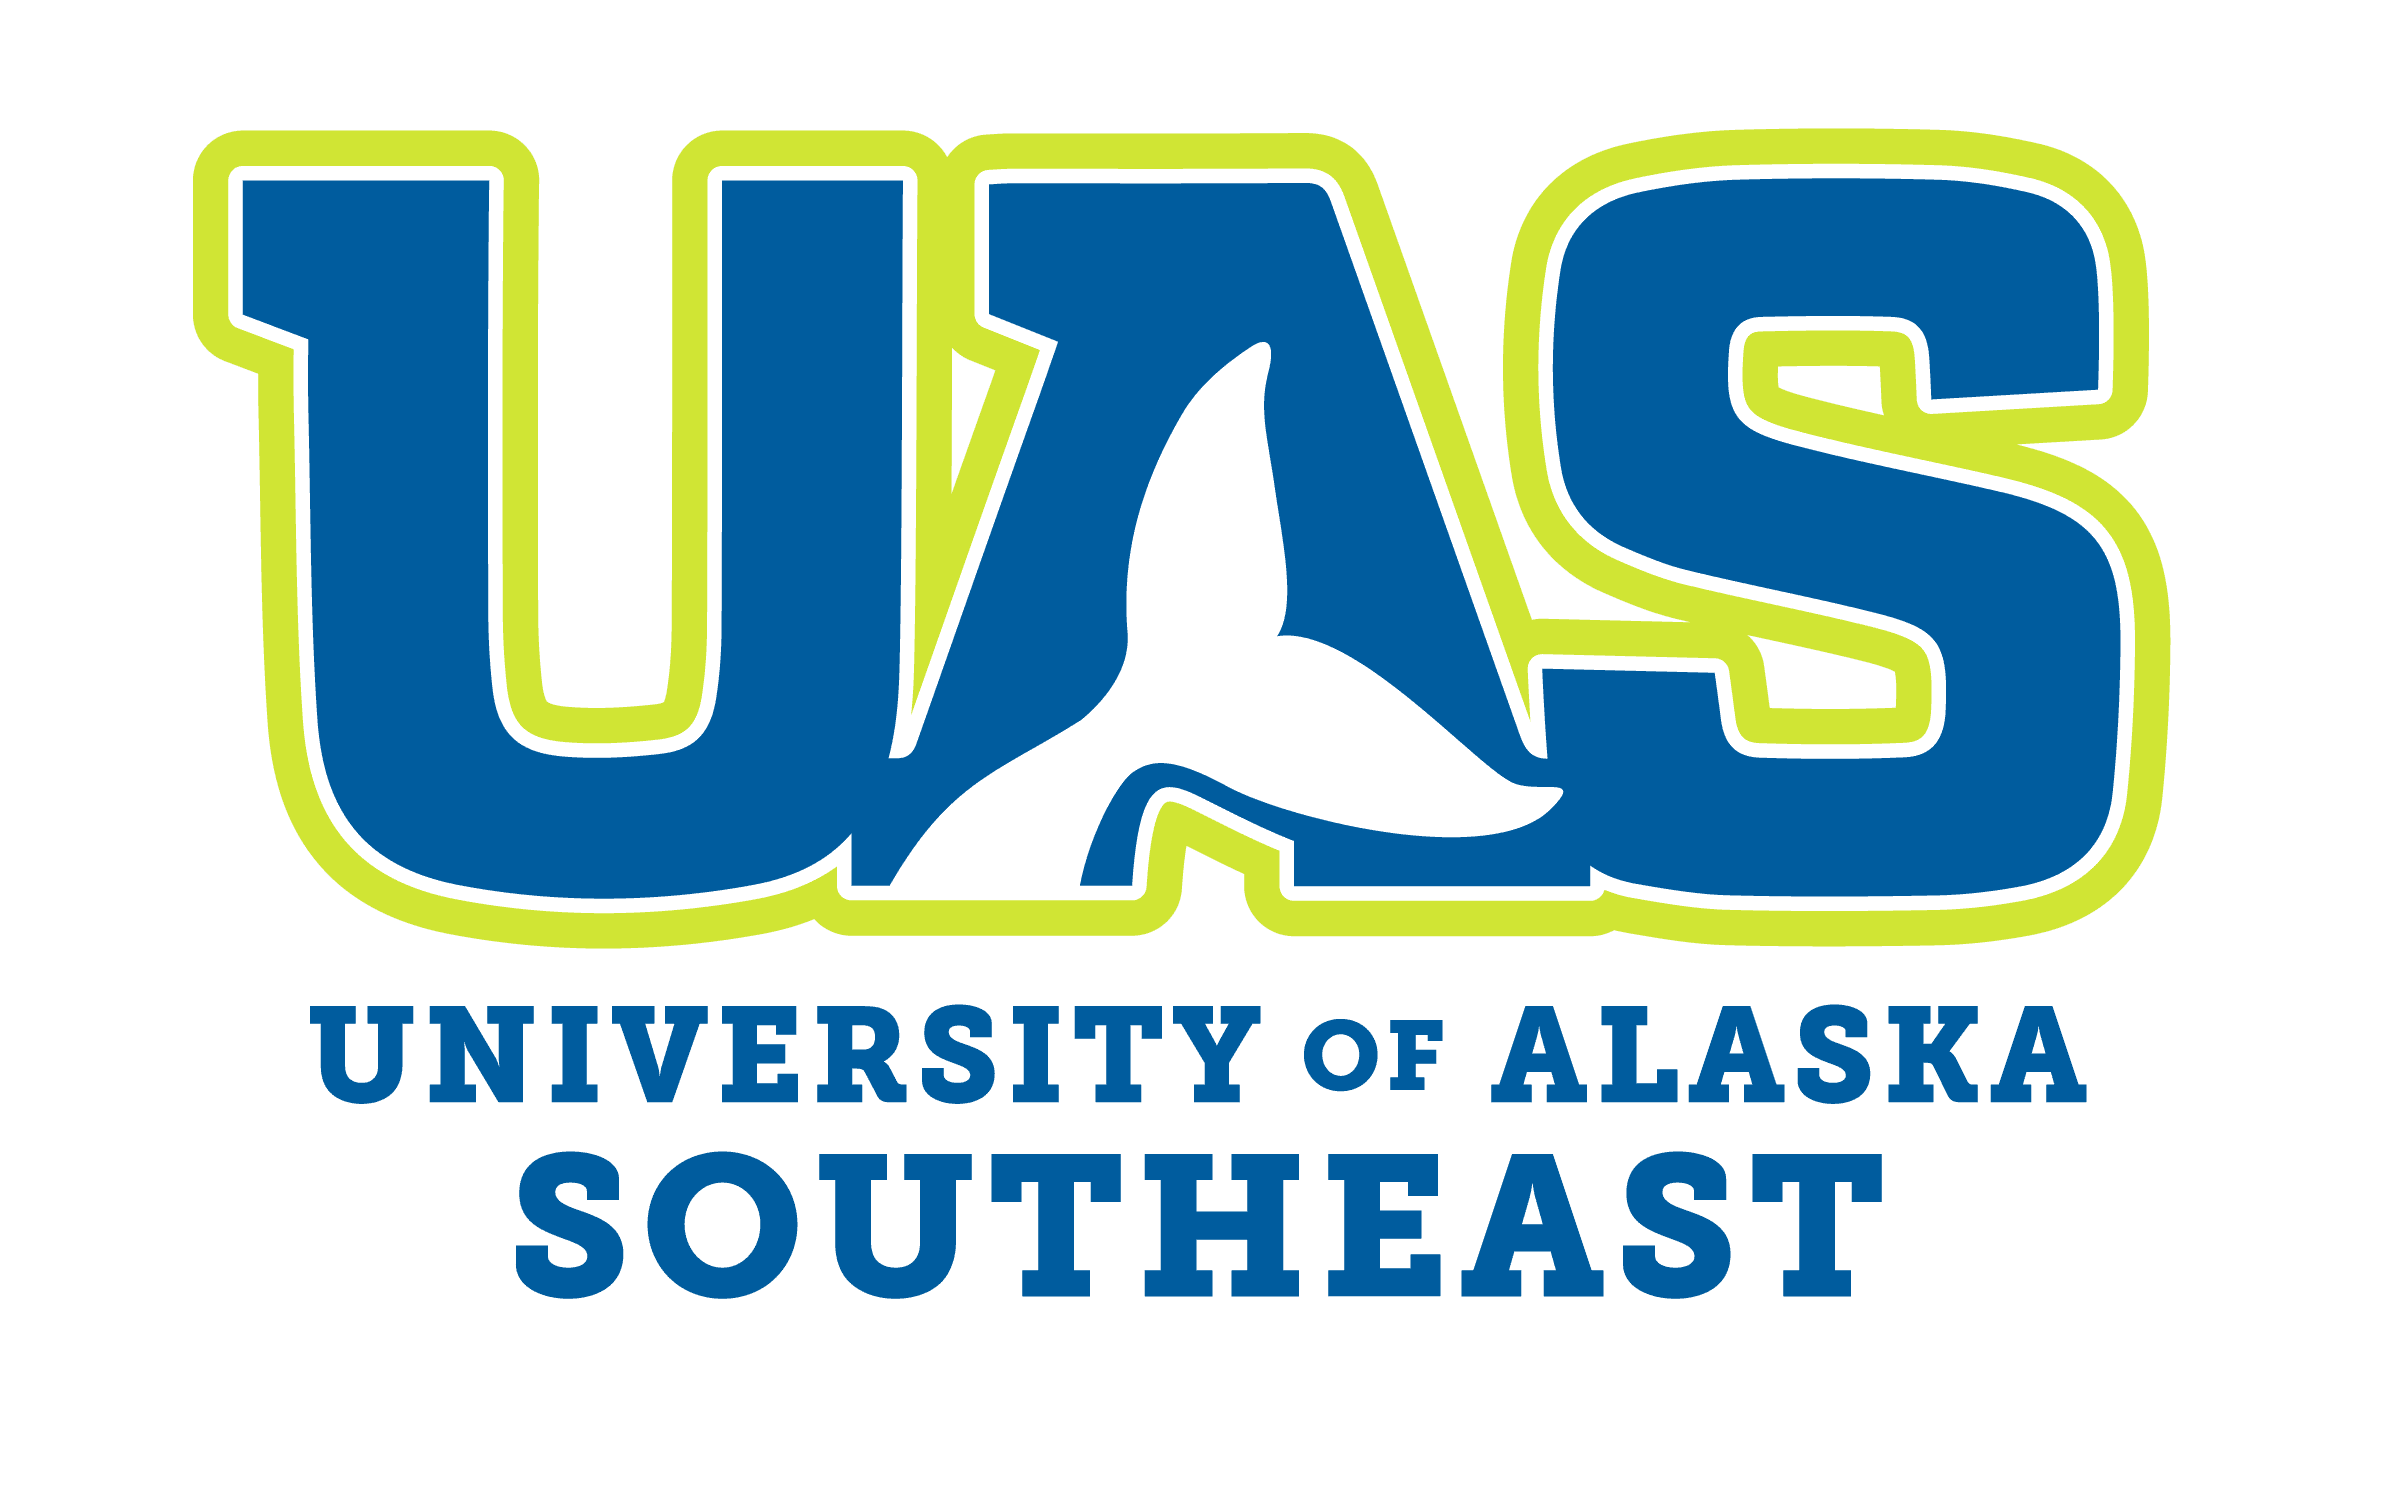 university of southeast Southeast missouri state university is a comprehensive regional university that offers students helpful scholarships, hands-on experience, and a diverse student body.